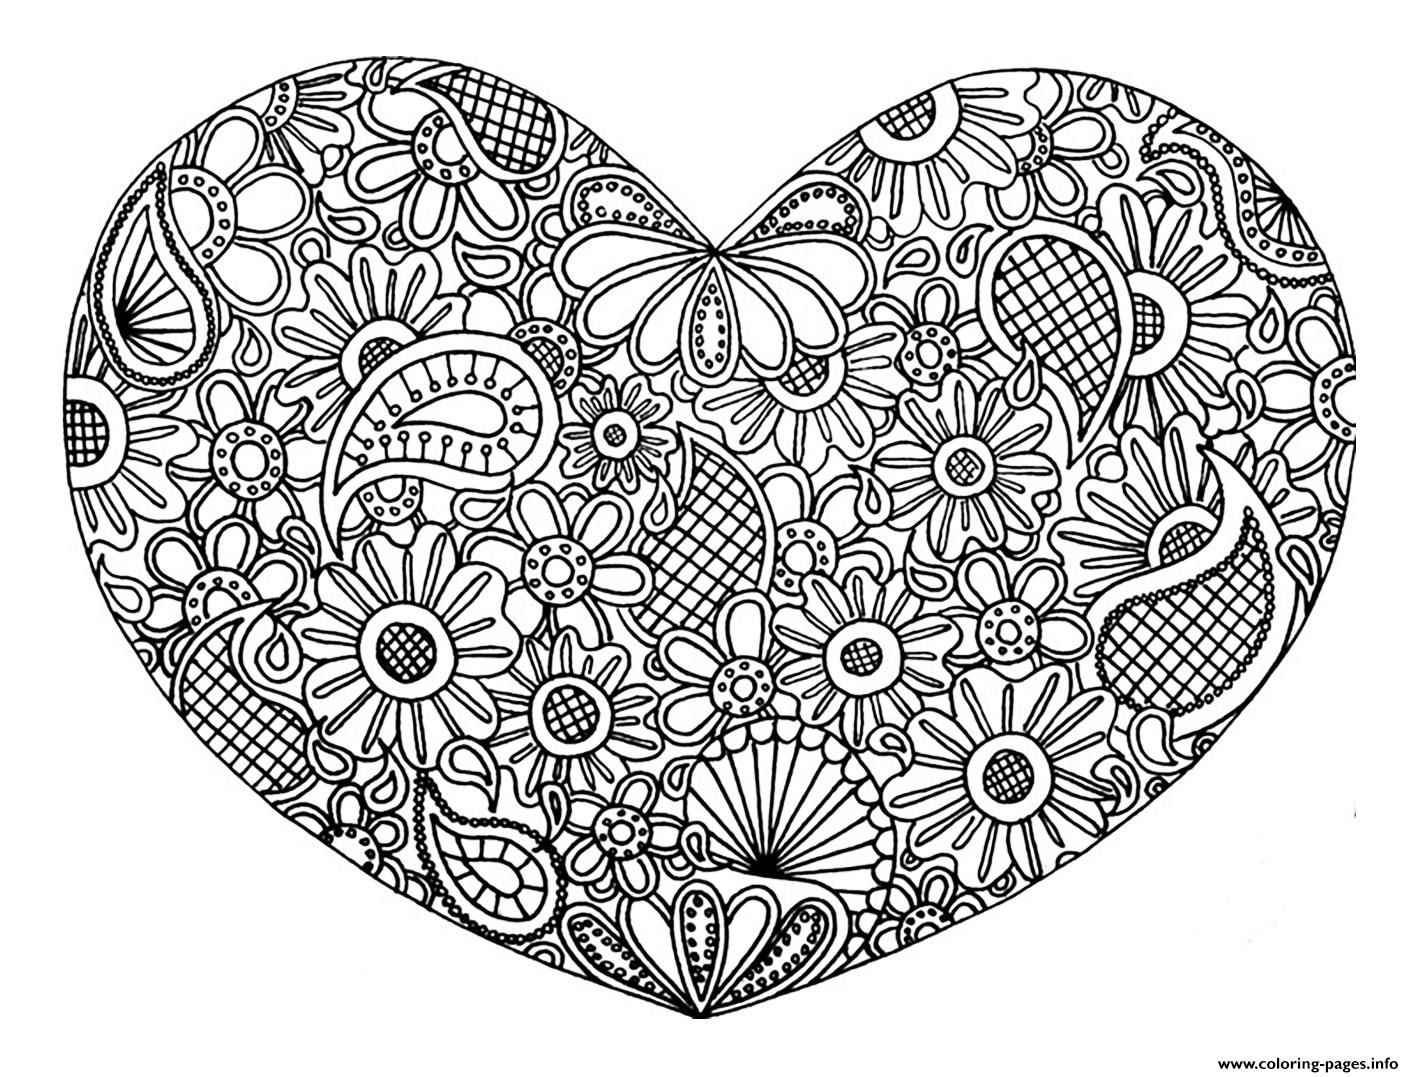 Disney zentangle coloring pages -  Print Adult Heart Mandala Fleurs Zen 2017 Coloring Pages